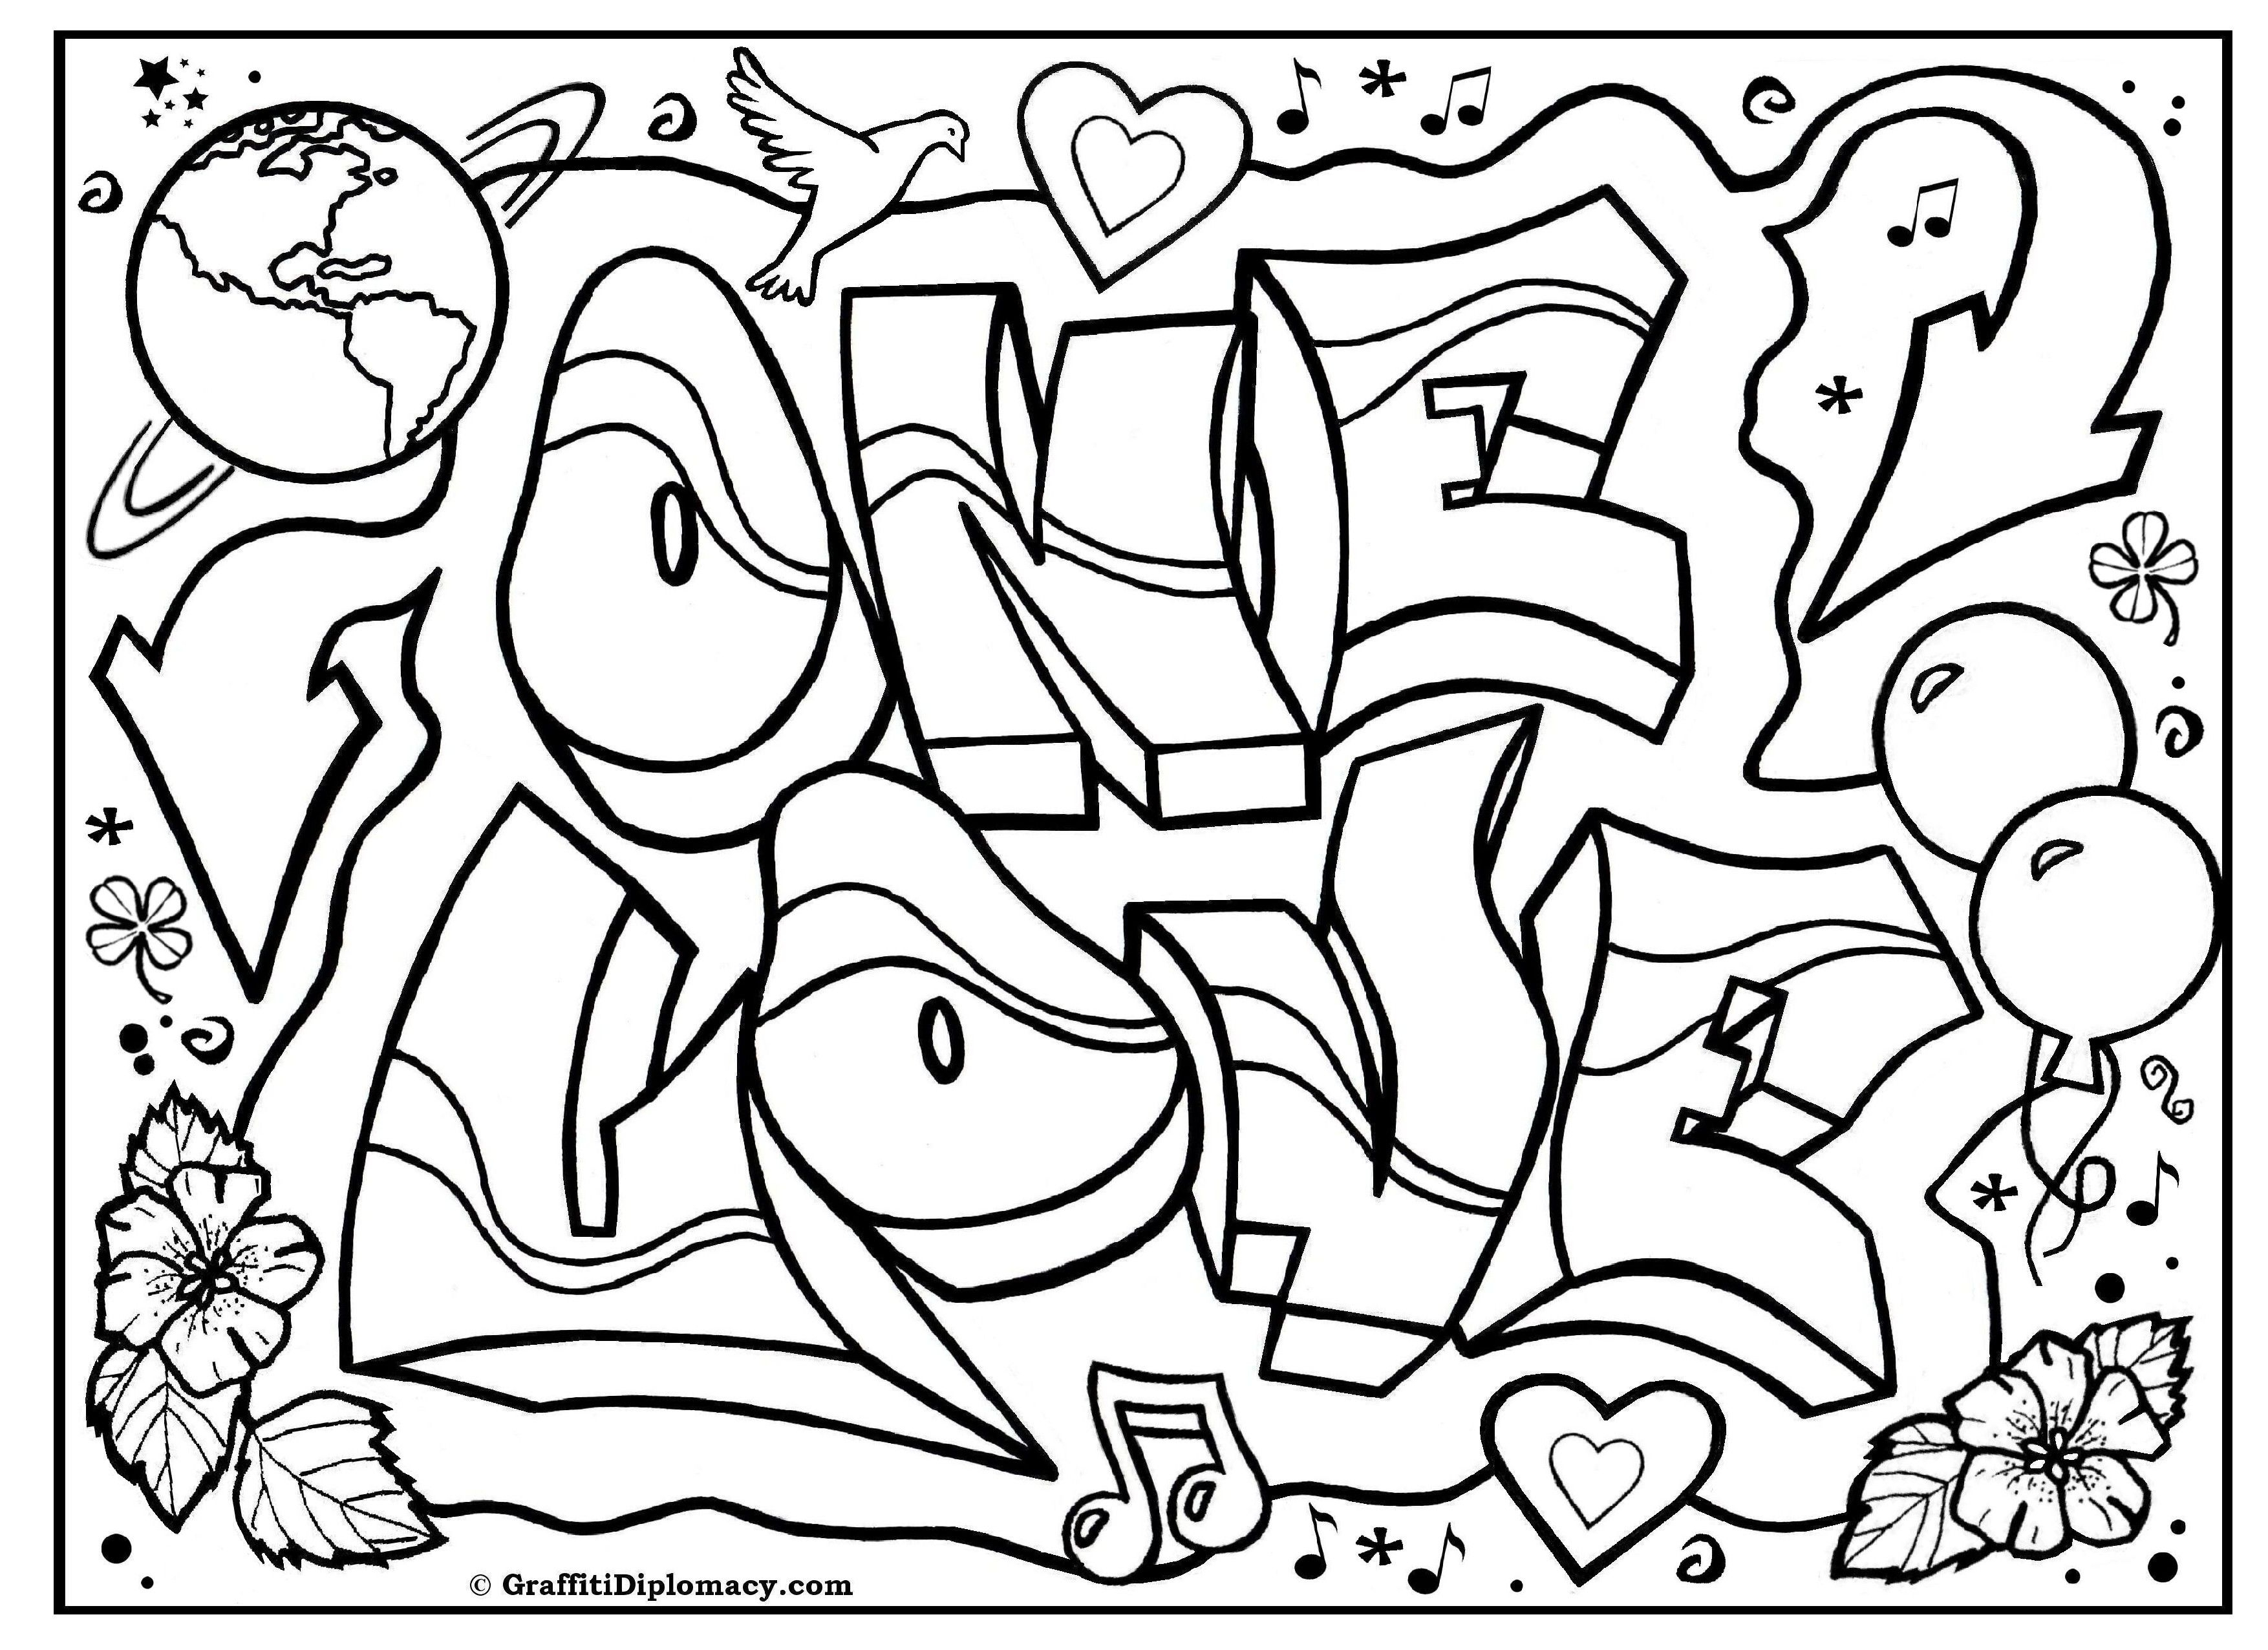 3508x2552 Cool One Love Graffiti Free Coloring Page Graffiti Printable Free